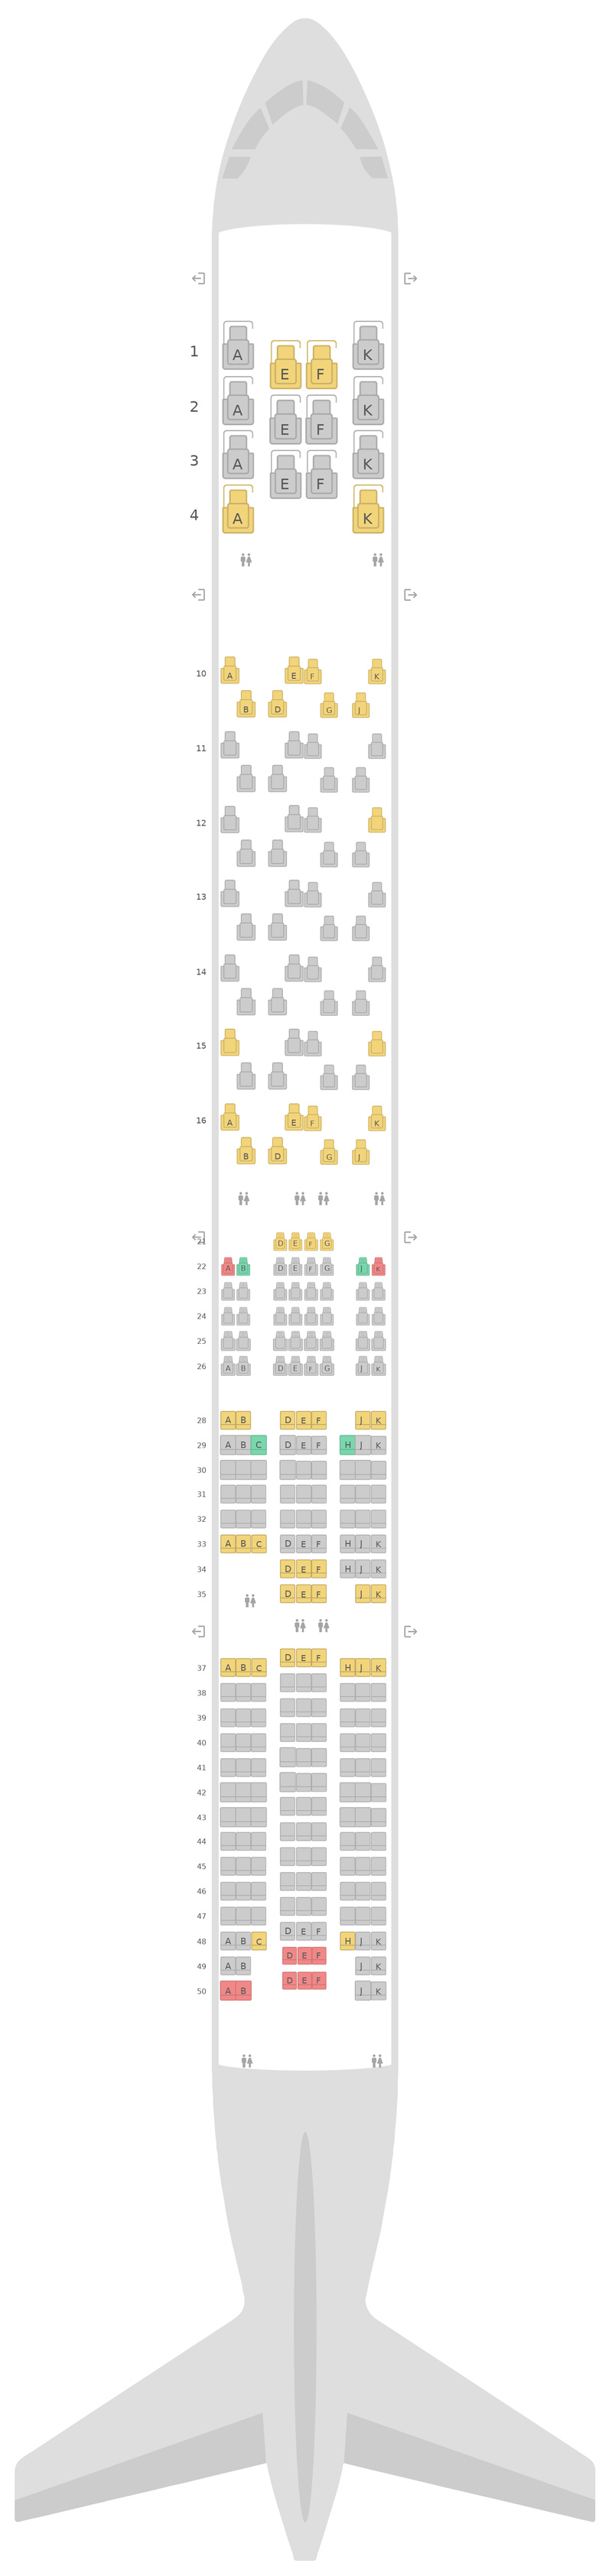 Seat Map Boeing 777-300 (773) British Airways